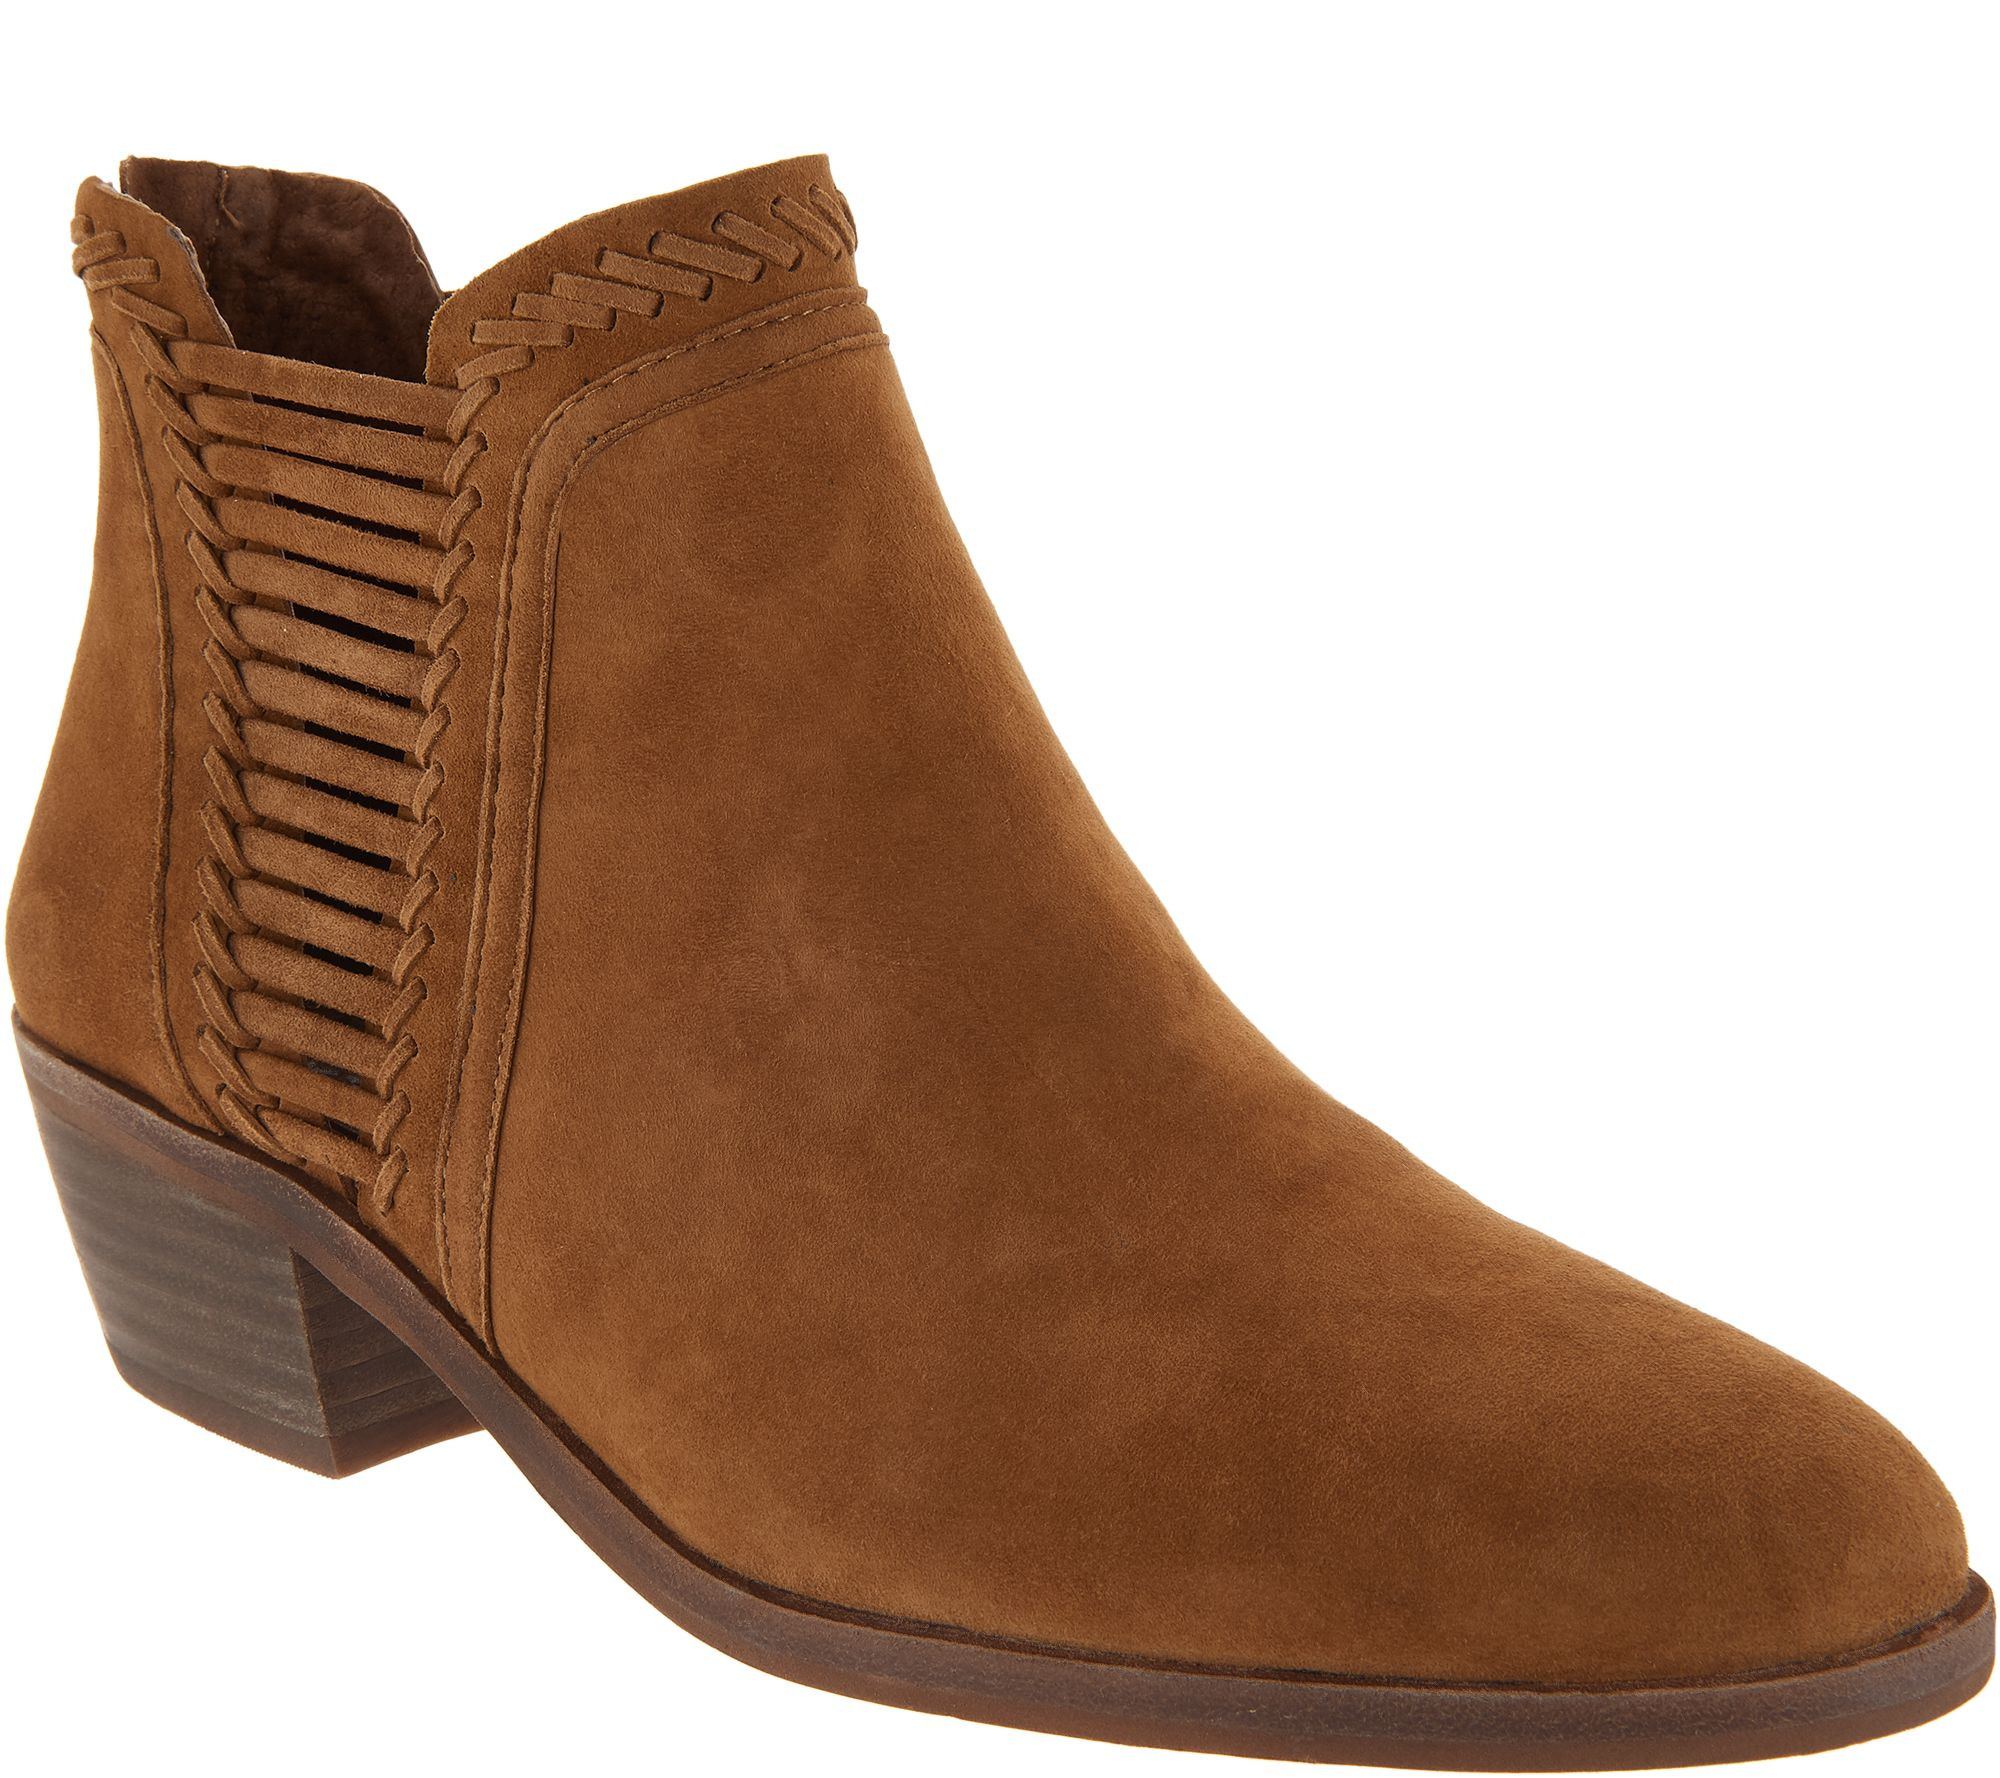 037c92d0058 Vince Camuto Leather or Suede Booties - Pippsy — QVC.com